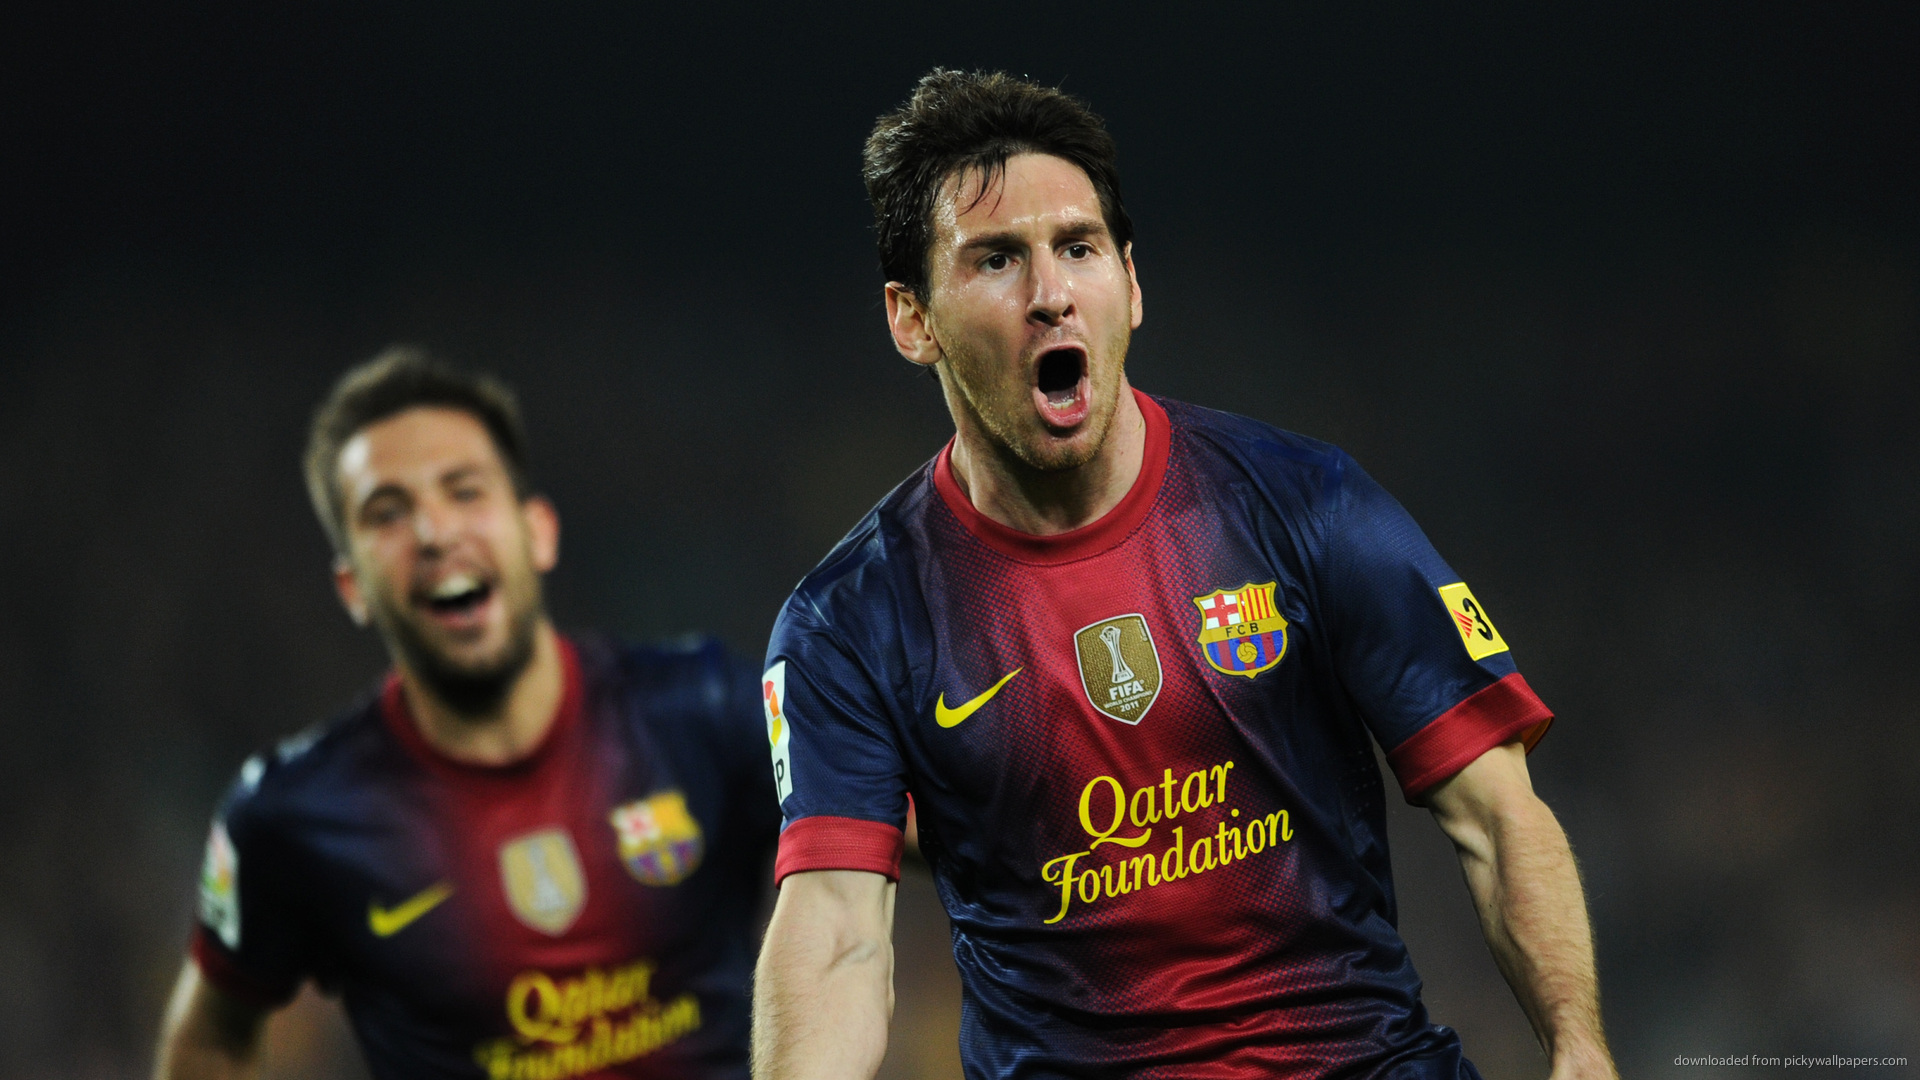 Barcelona Goal Messi Wallpaper Hd